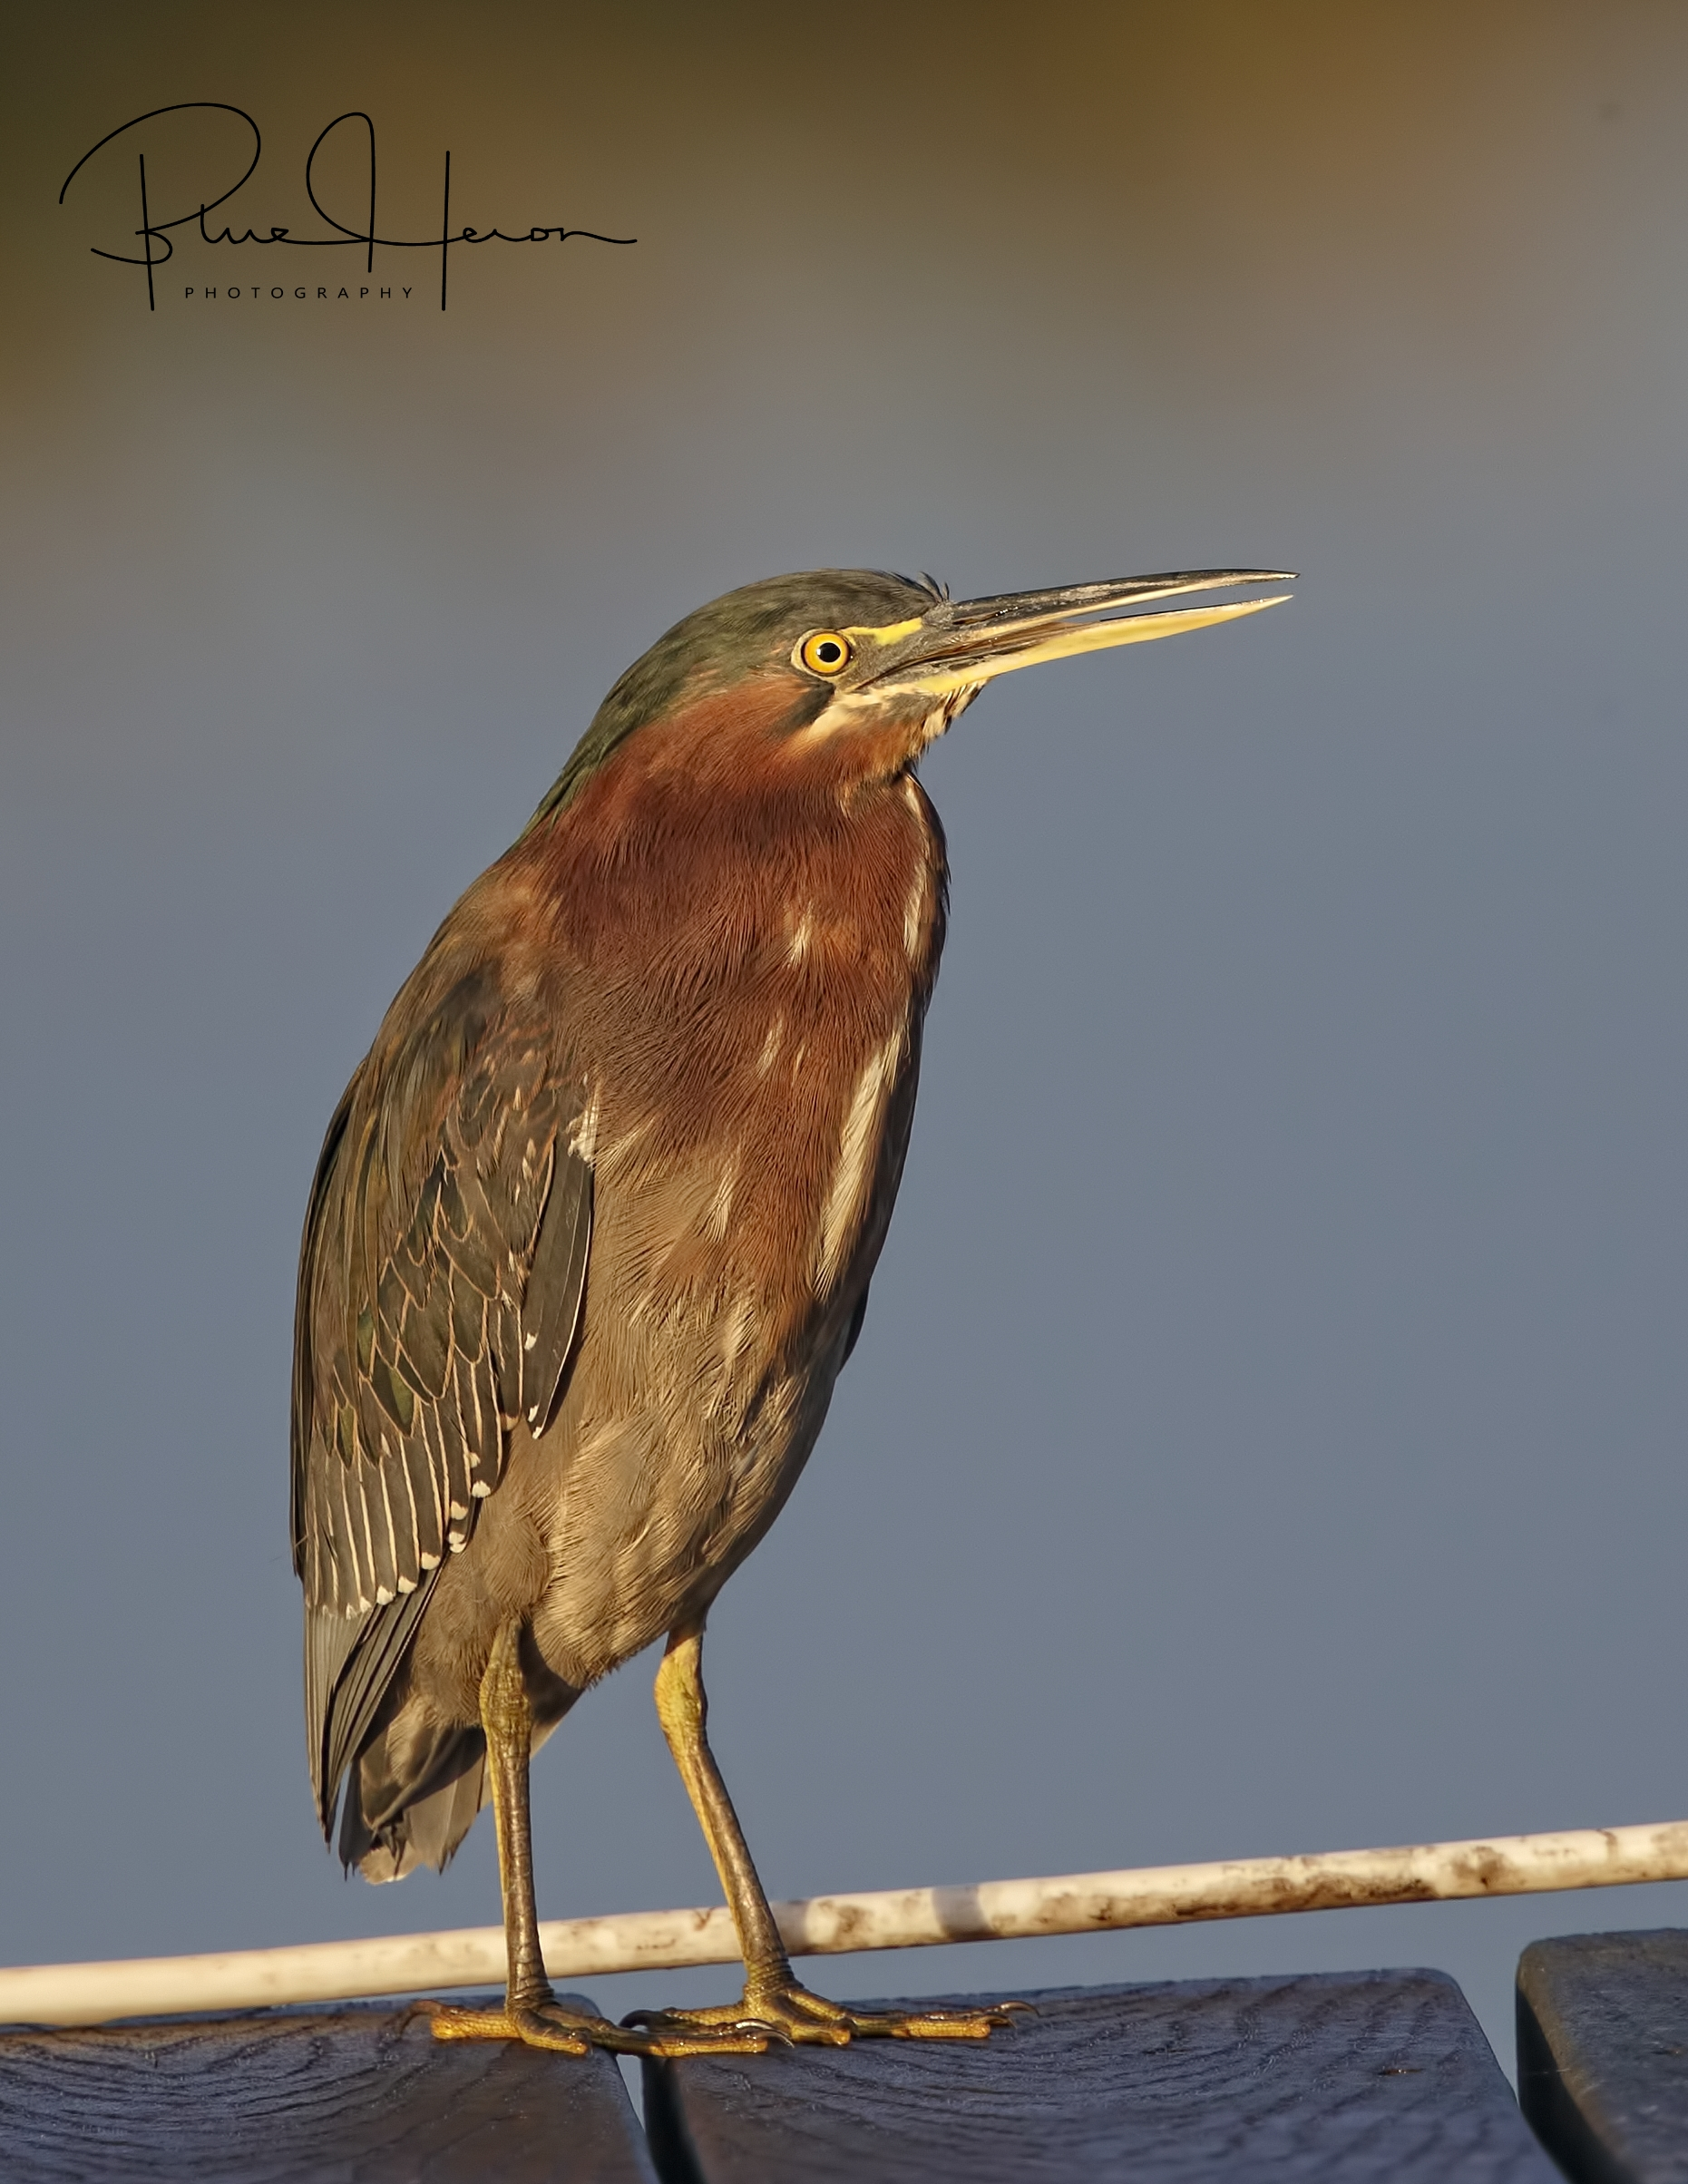 A Little Green Heron lands on the dock and is perturbed by the noise of the woodpecker